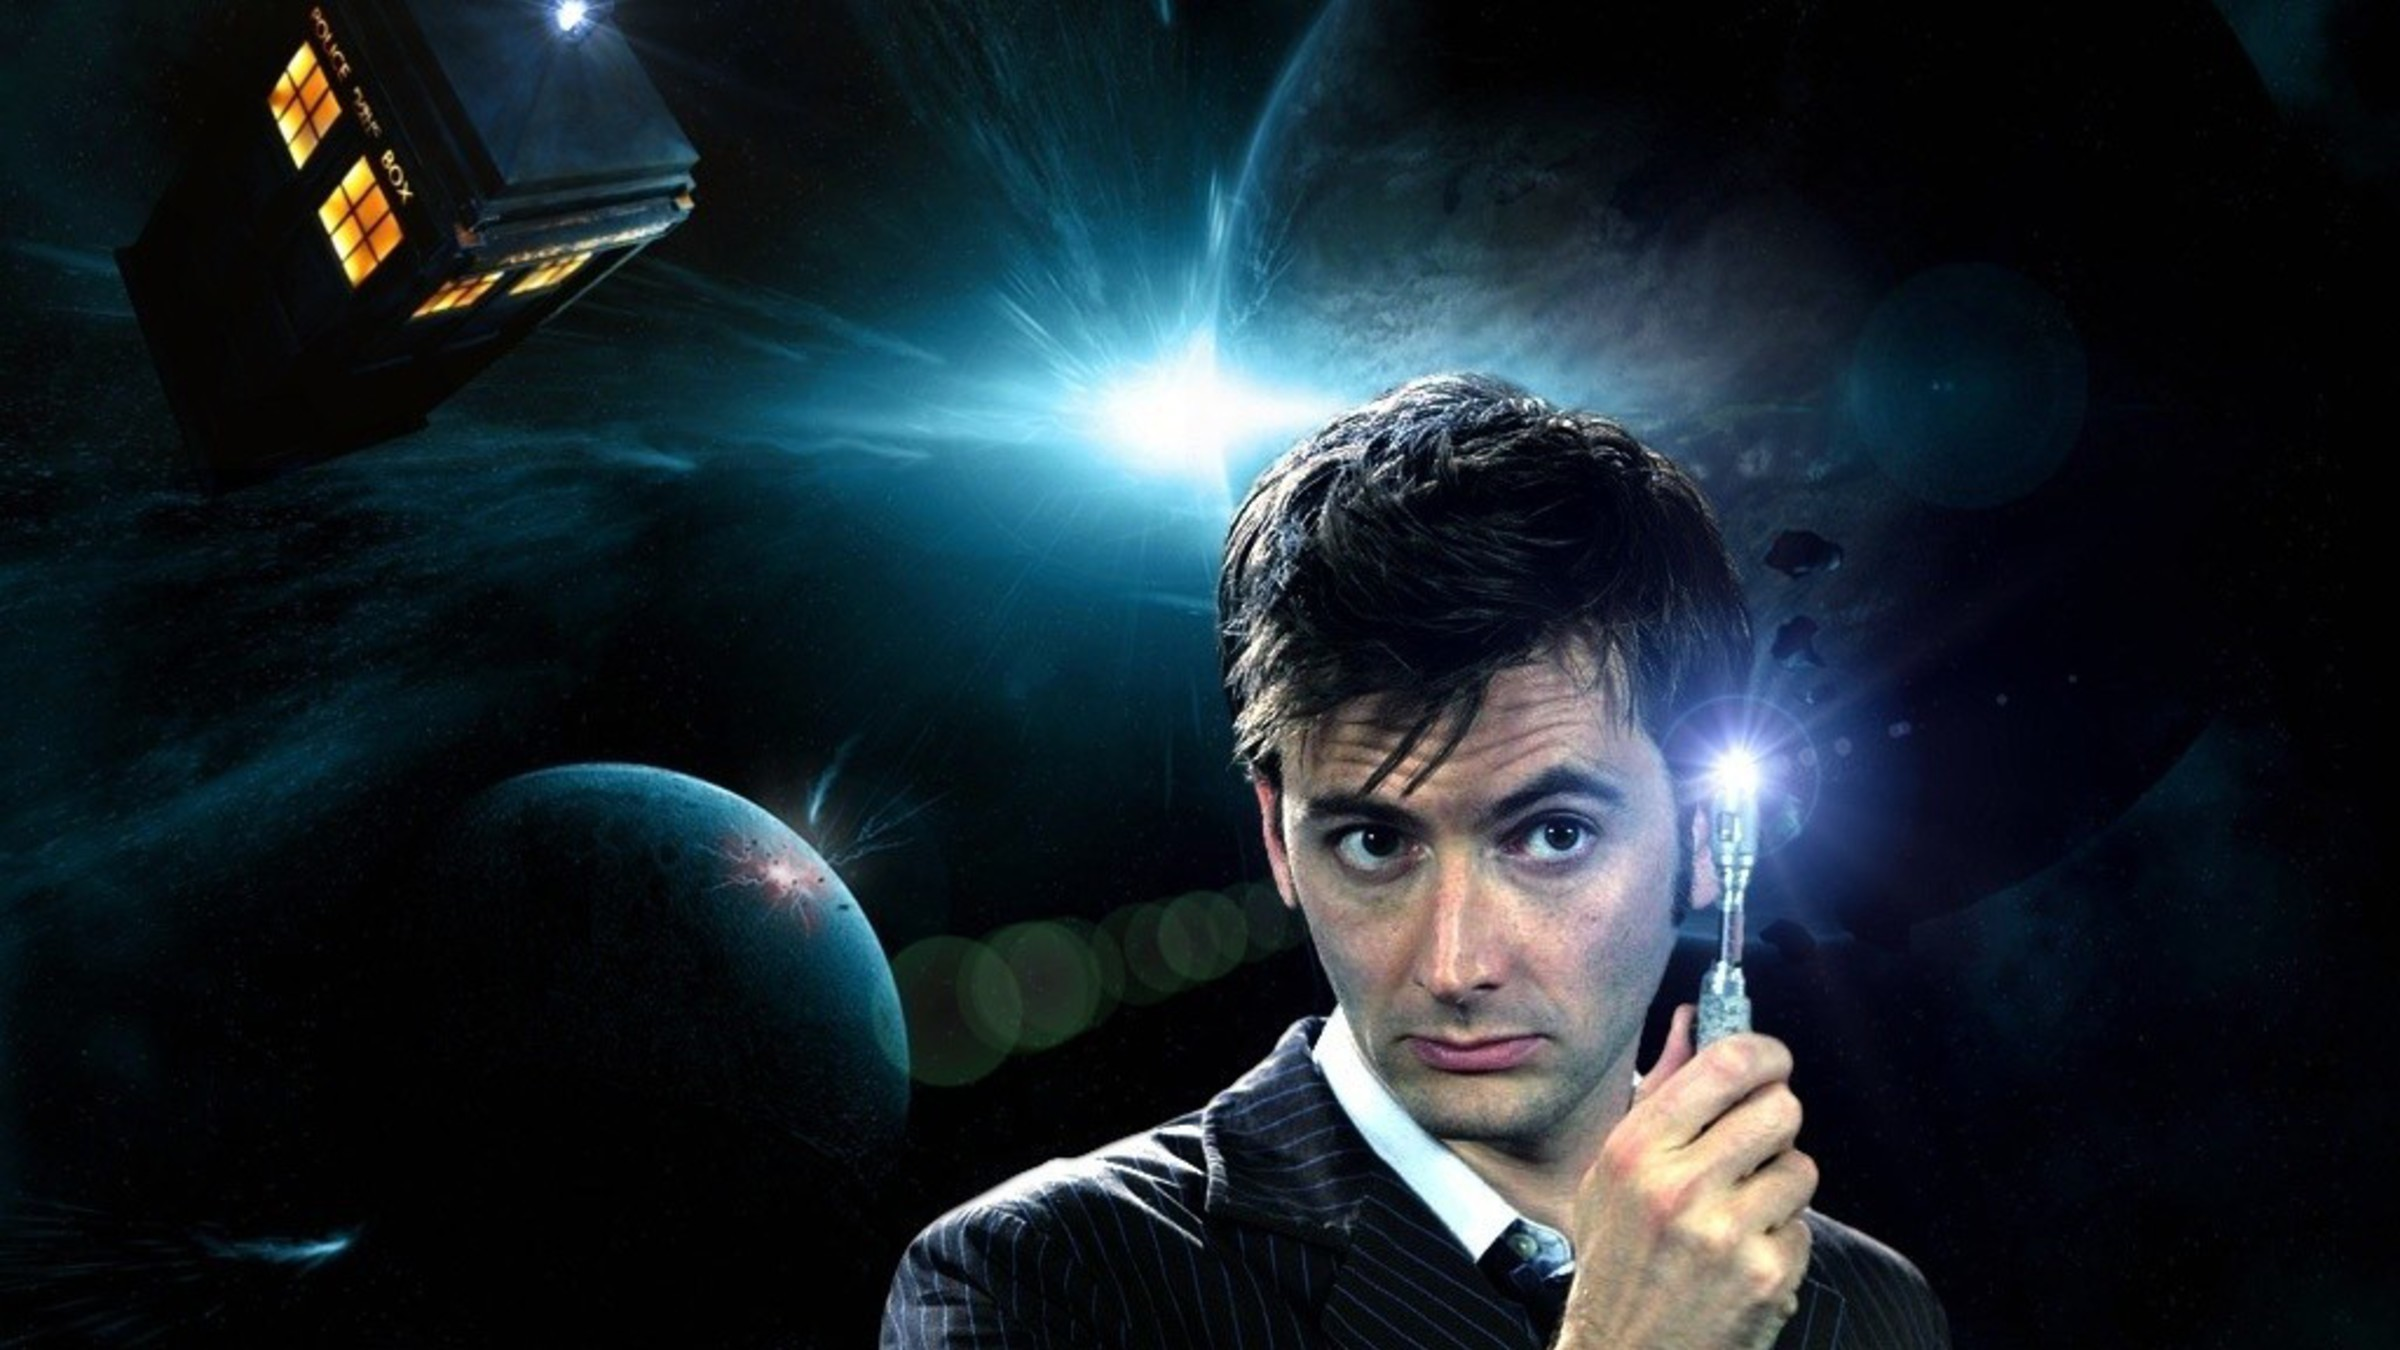 2400x1350 Tardis david tennant doctor who tenth sonic screwdriver wallpaper